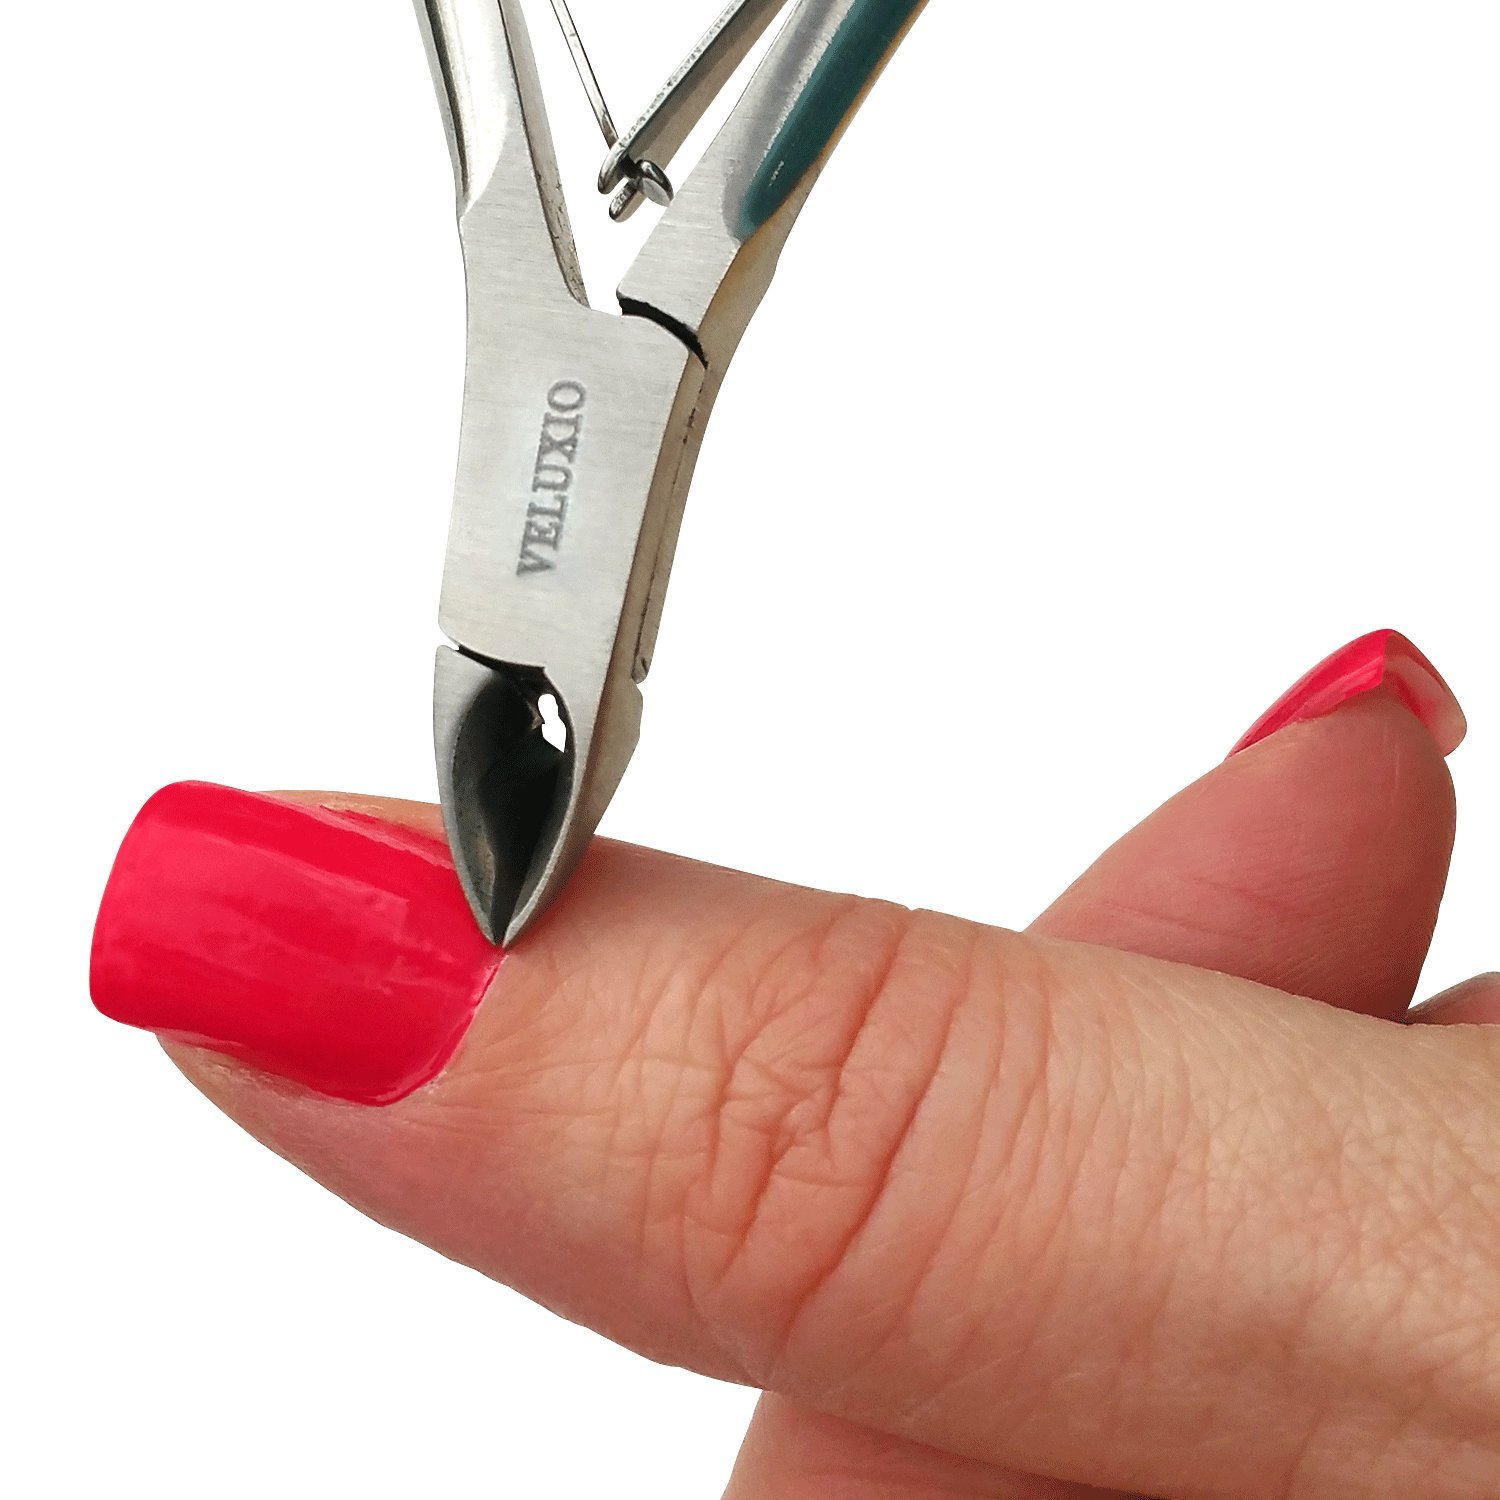 Amazon.com : Cuticle Nipper - Best Professional Nail Cutter ...